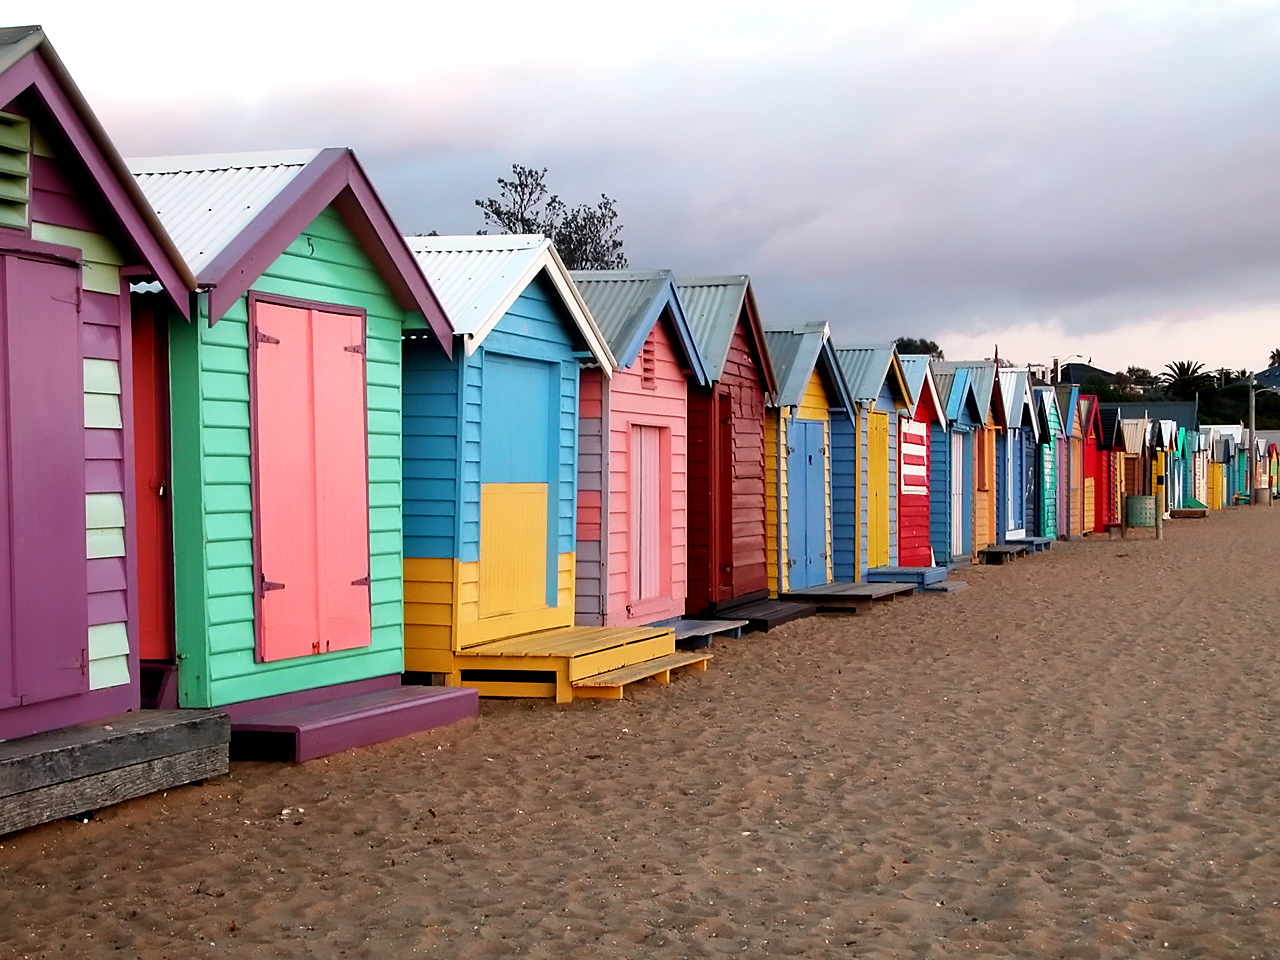 Bright Beach Change Rooms By Beau Wade from New York, NY, United States (Brighton Beach, Melbourne 2003) [CC-BY-2.0 (https://creativecommons.org/licenses/by/2.0)], via Wikimedia Commons